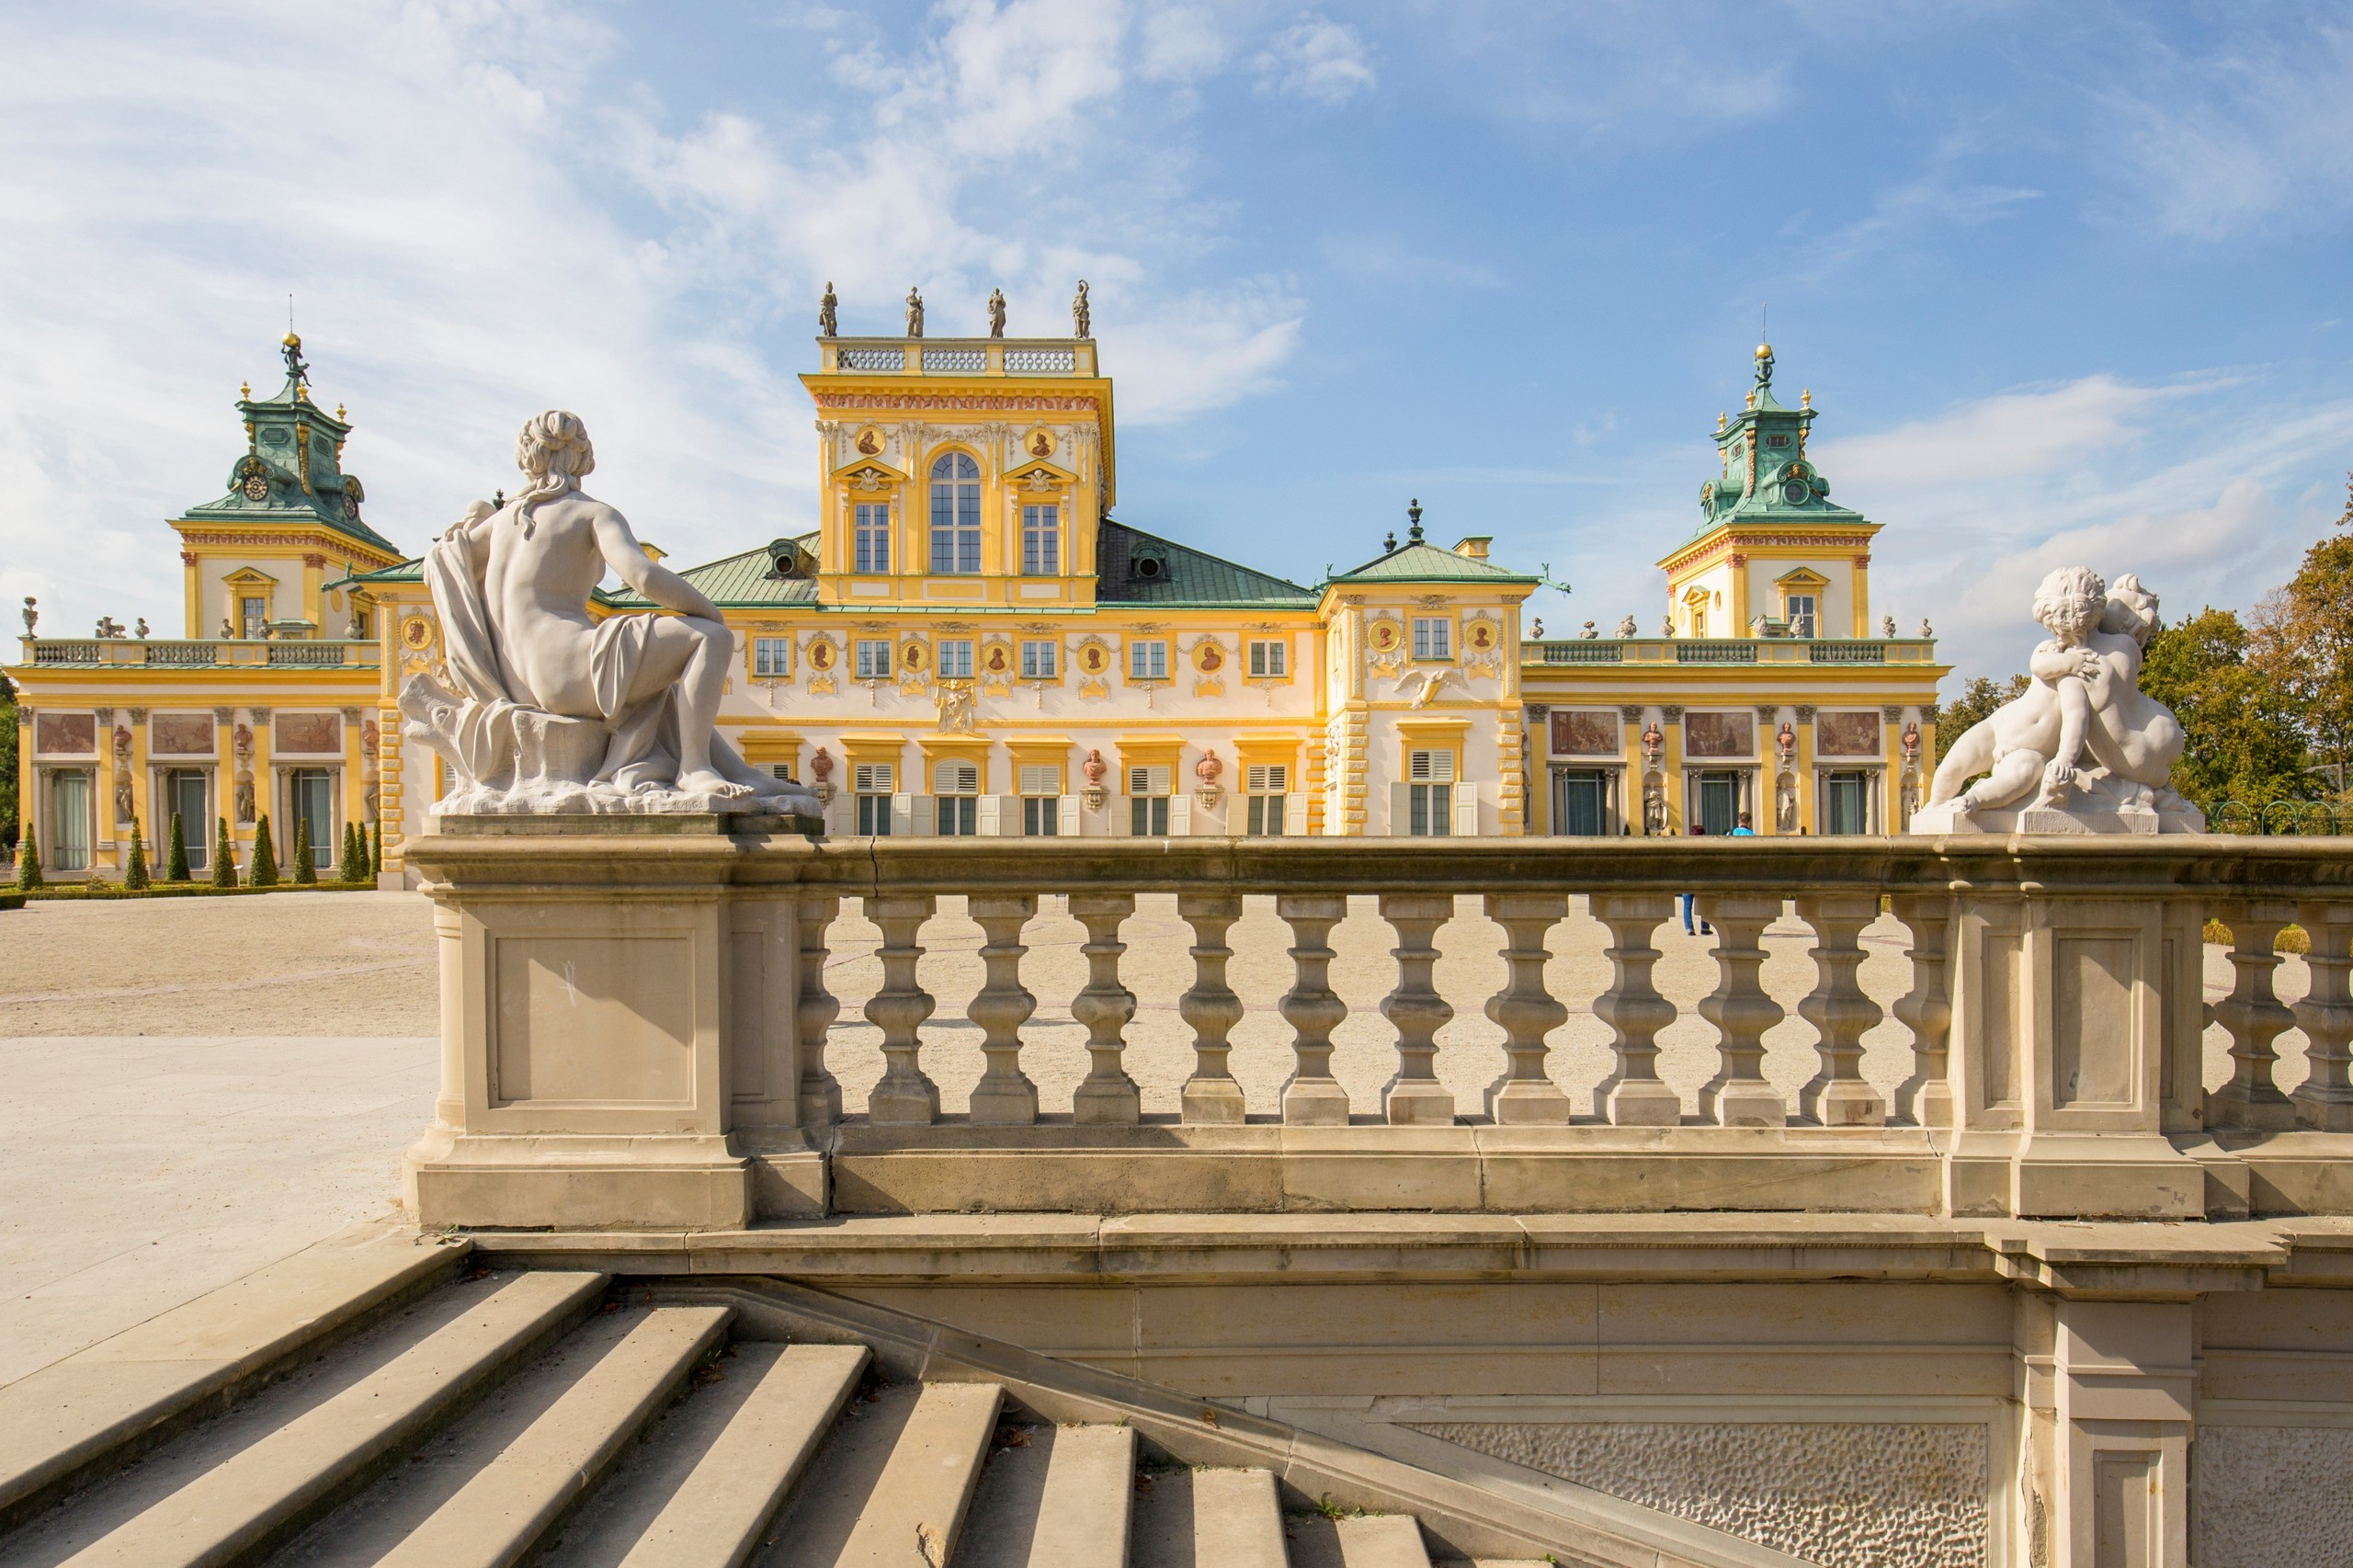 Royal Castle with Warsaw Old Town + Wilanow Palace of King Jan III Sobieski 4